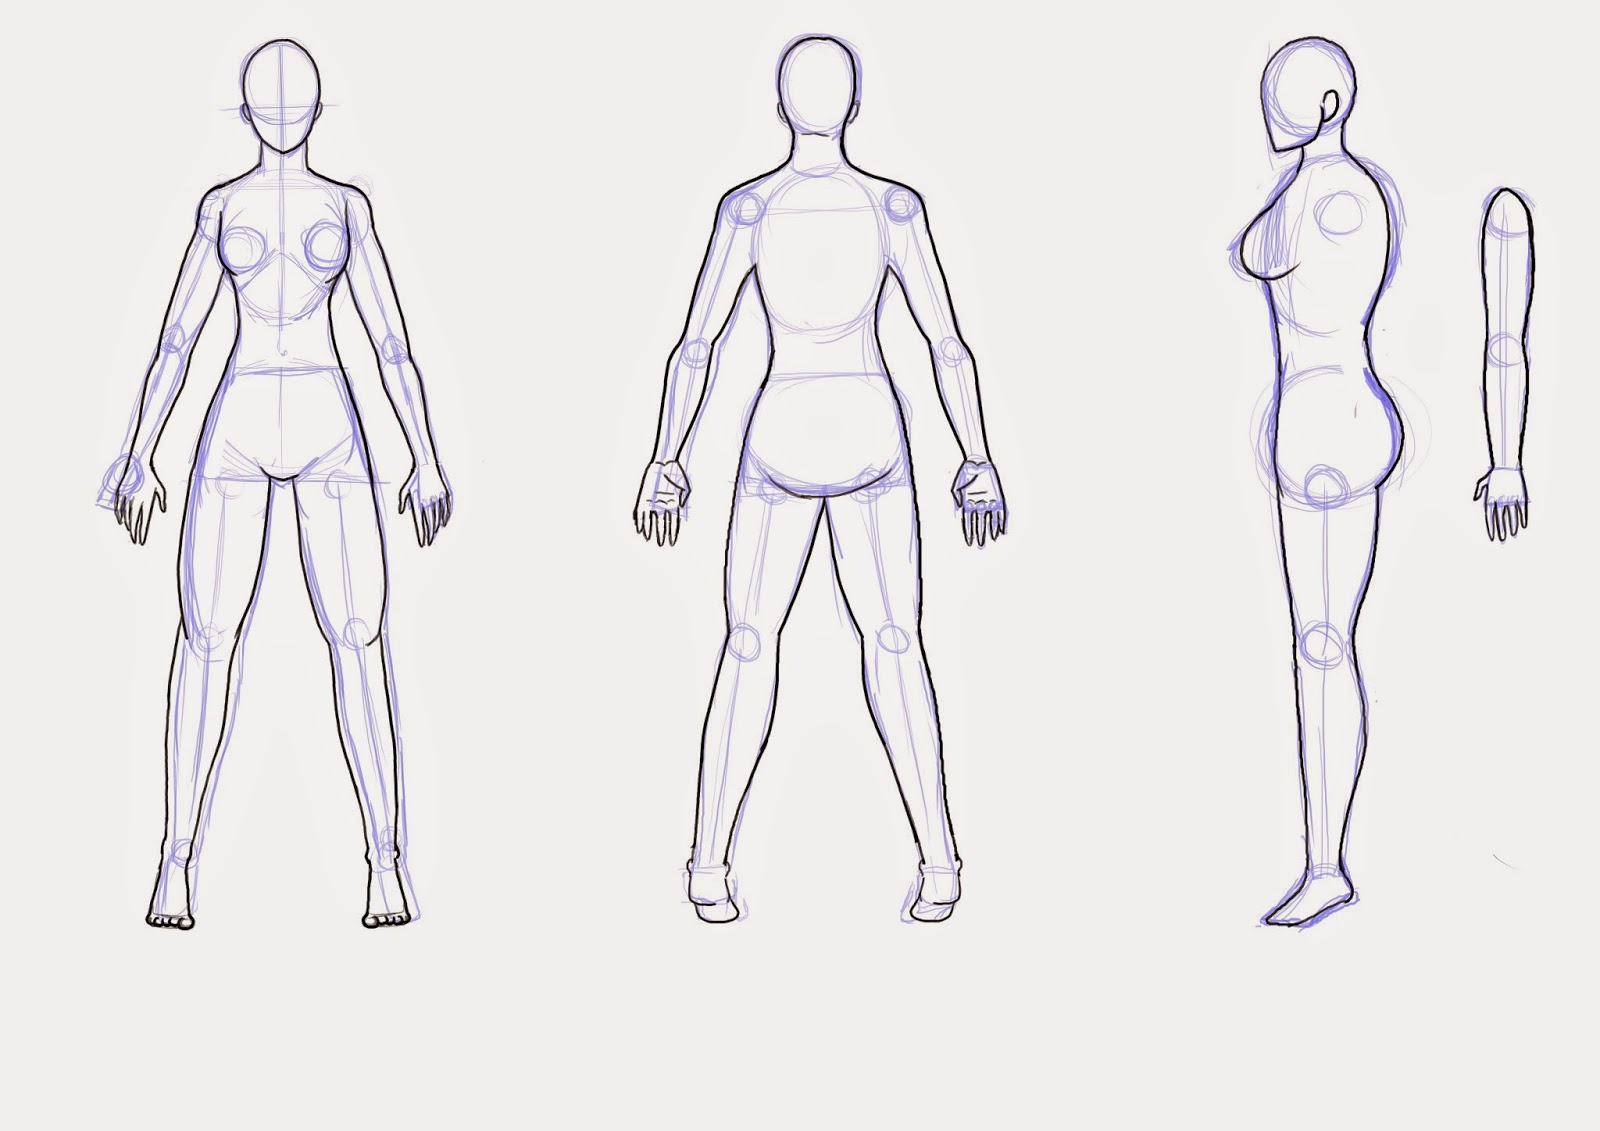 character body template koni polycode co